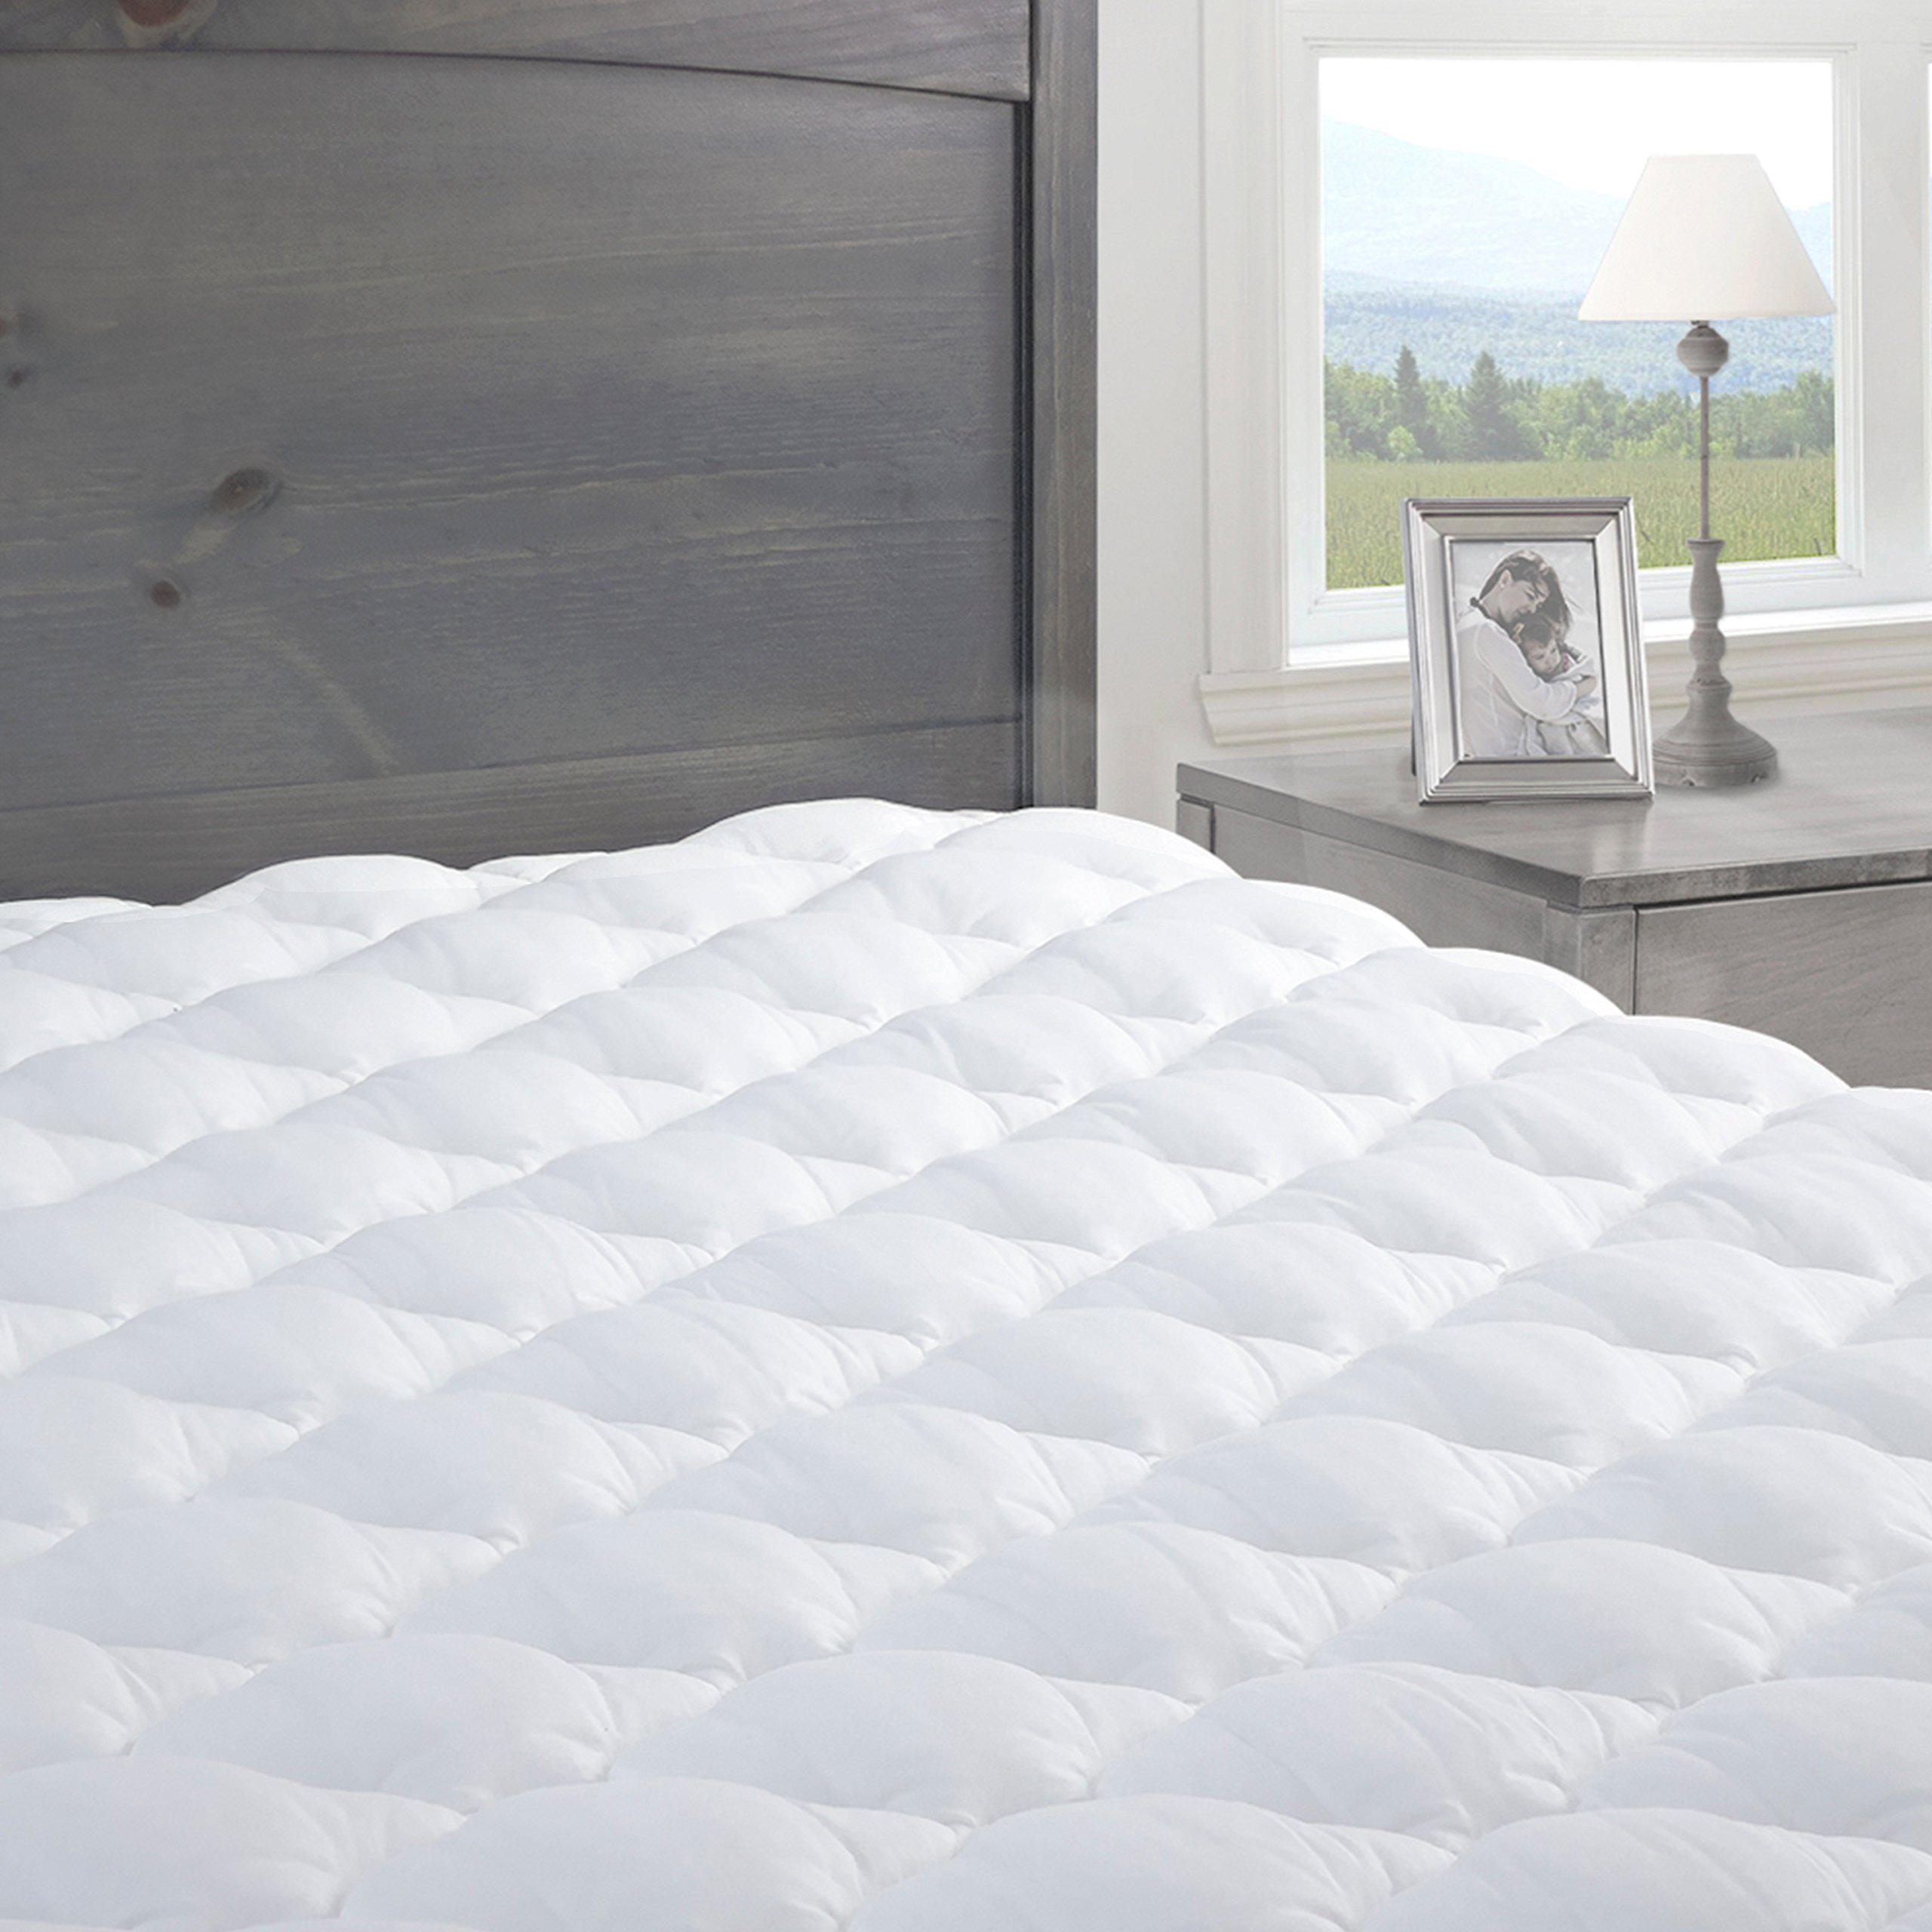 Pressure Relief Mattress Pad with Fitted Skirt |Bedsore Prevention Mattress Pads | Hypoallergenic Mattress Topper | Made in the USA, King